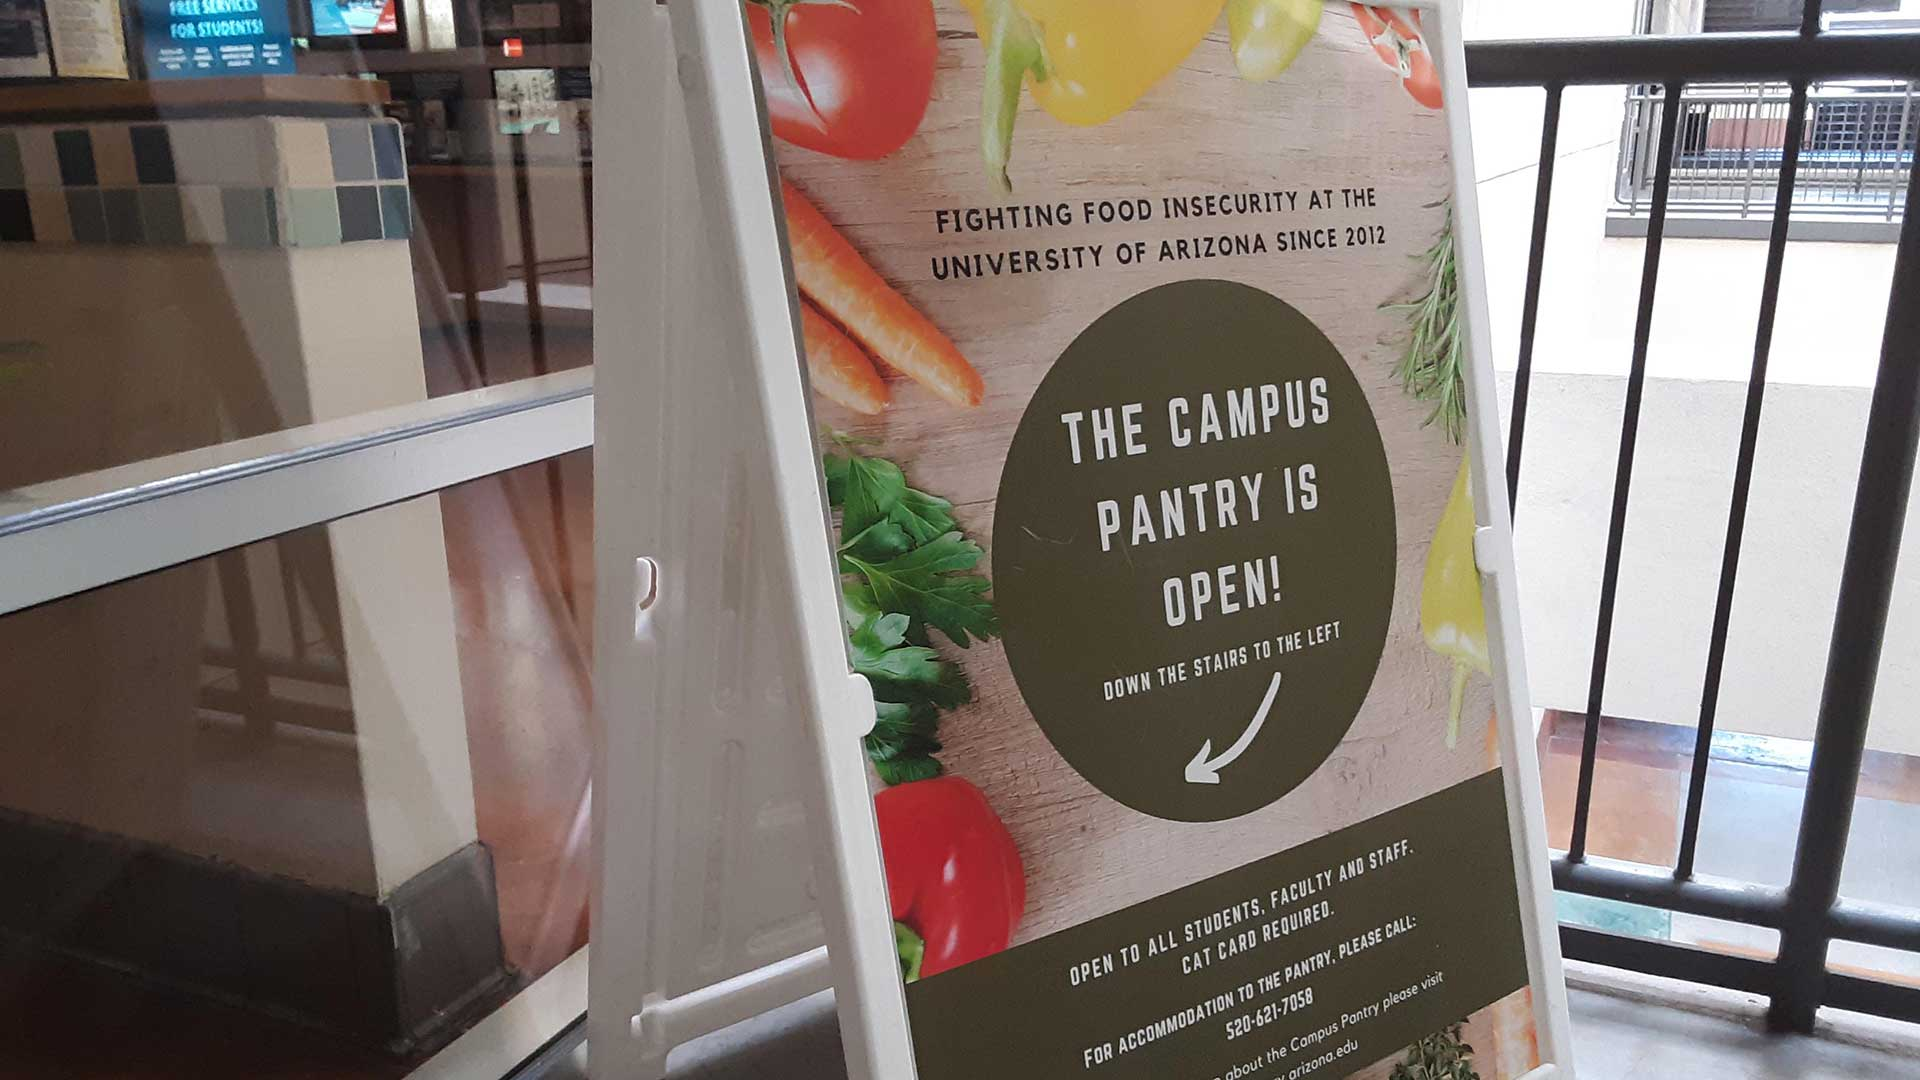 A sign points to the new UA Campus Pantry location at the Student Union Memorial Center